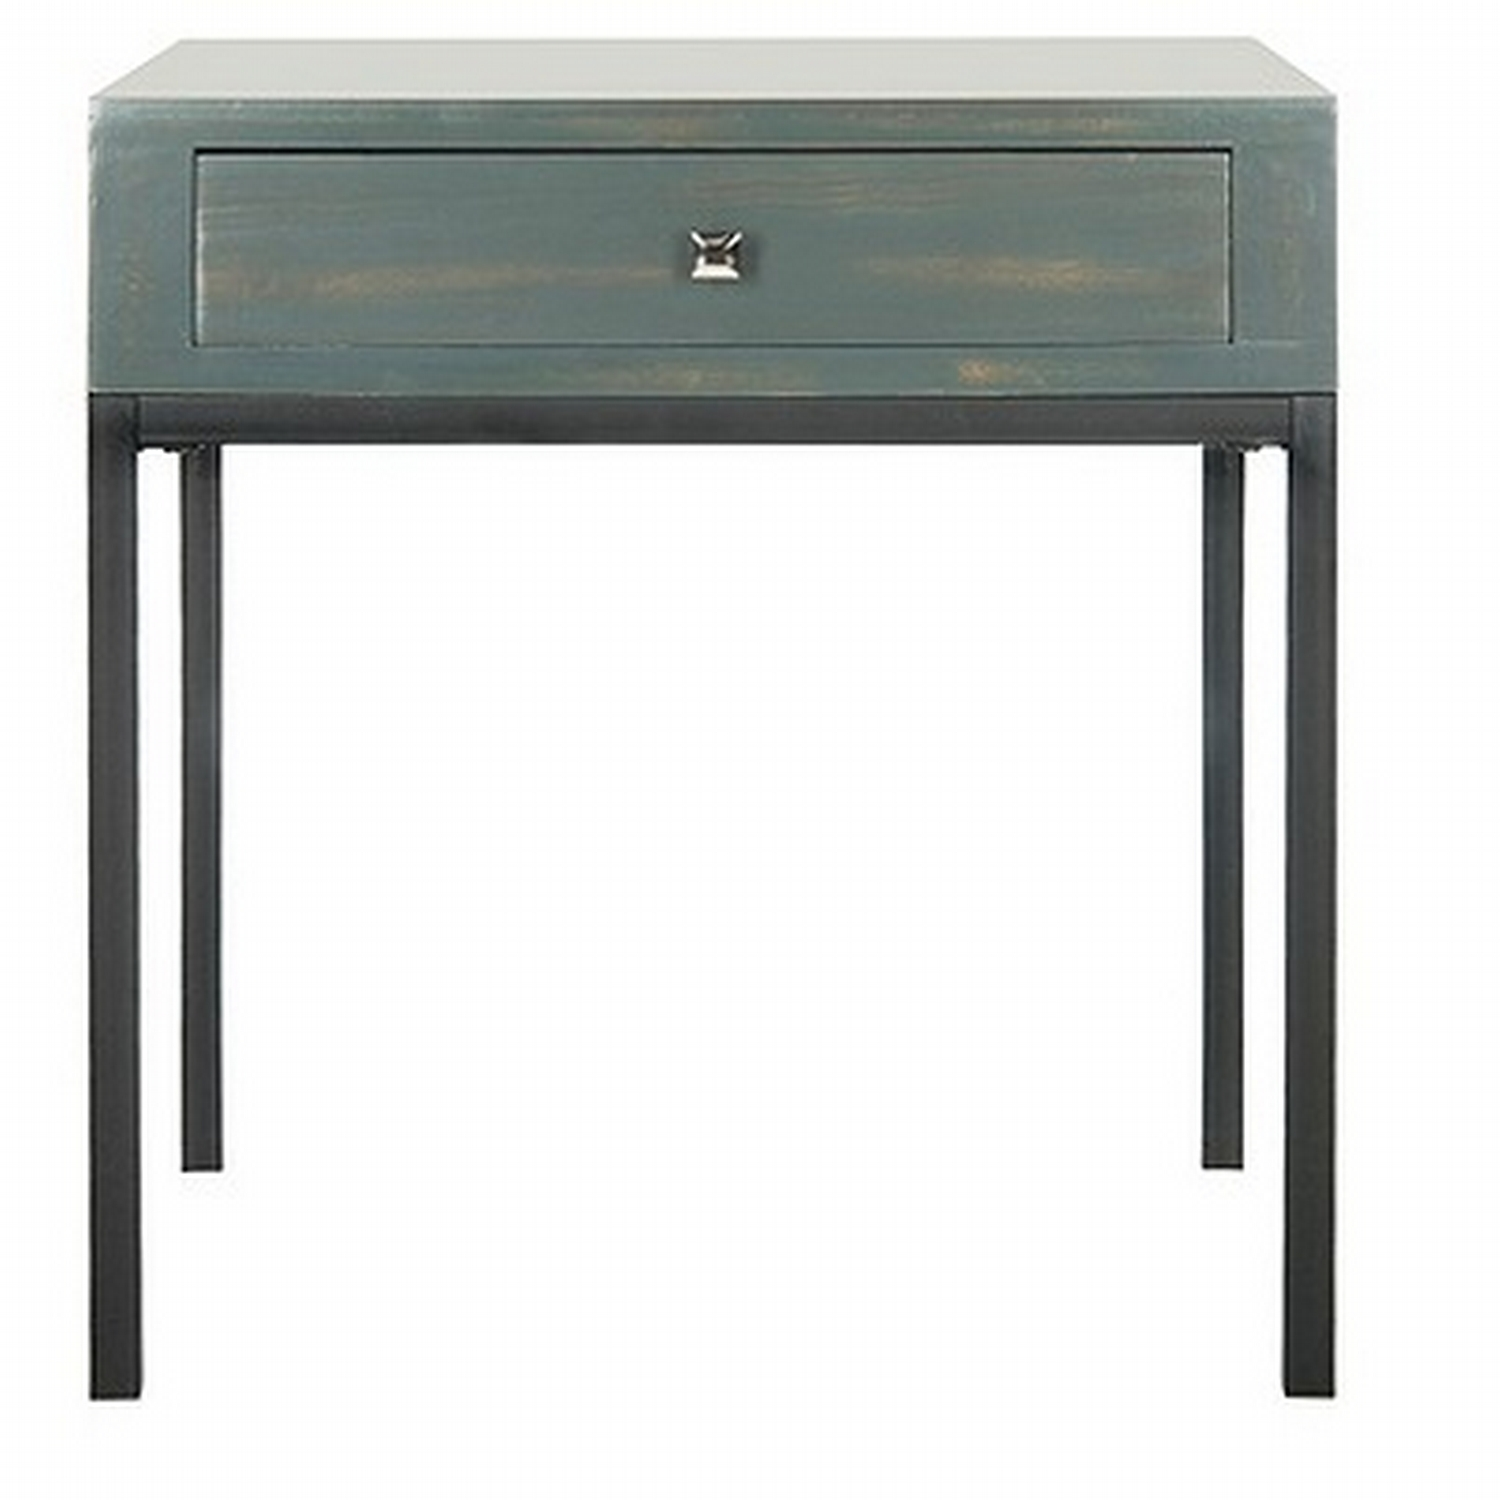 danforth accent table teal blue safavieh your way get white wire side small antique marble top resin wicker furniture hammered metal coffee demilune console counter height dining